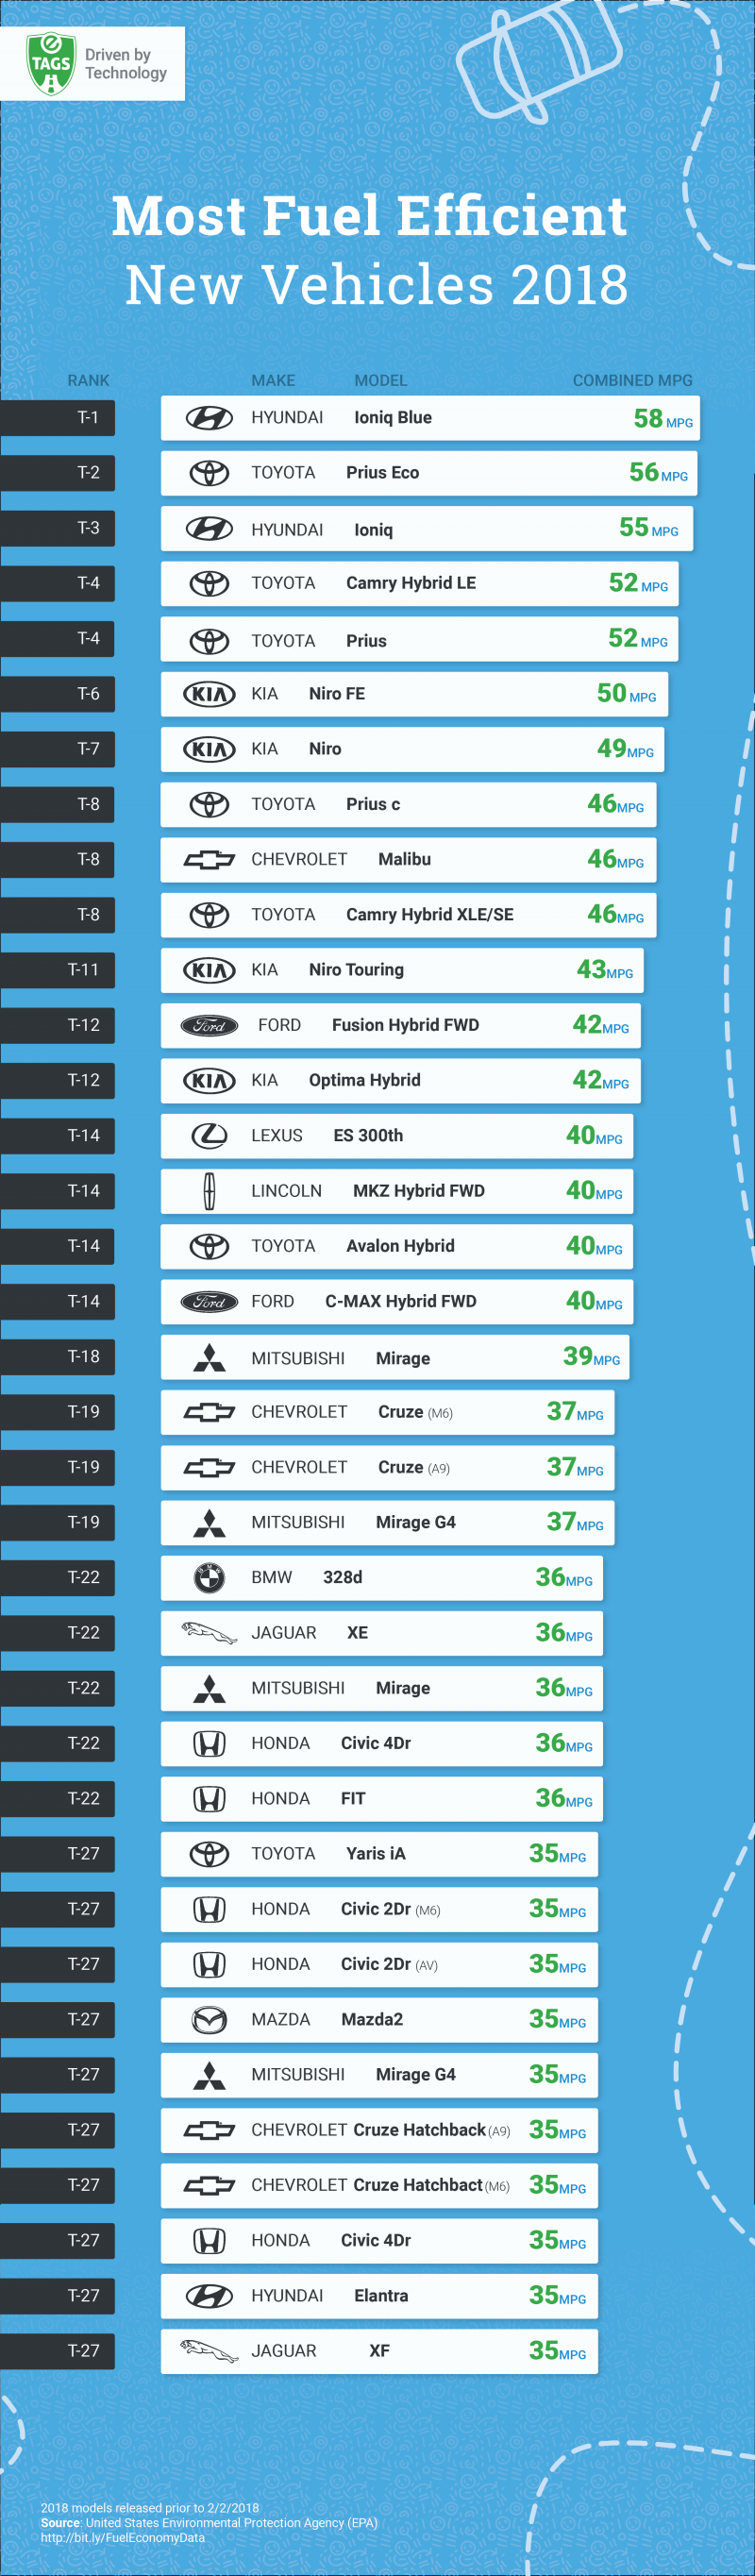 Most Fuel Efficient New Vehicles 2018